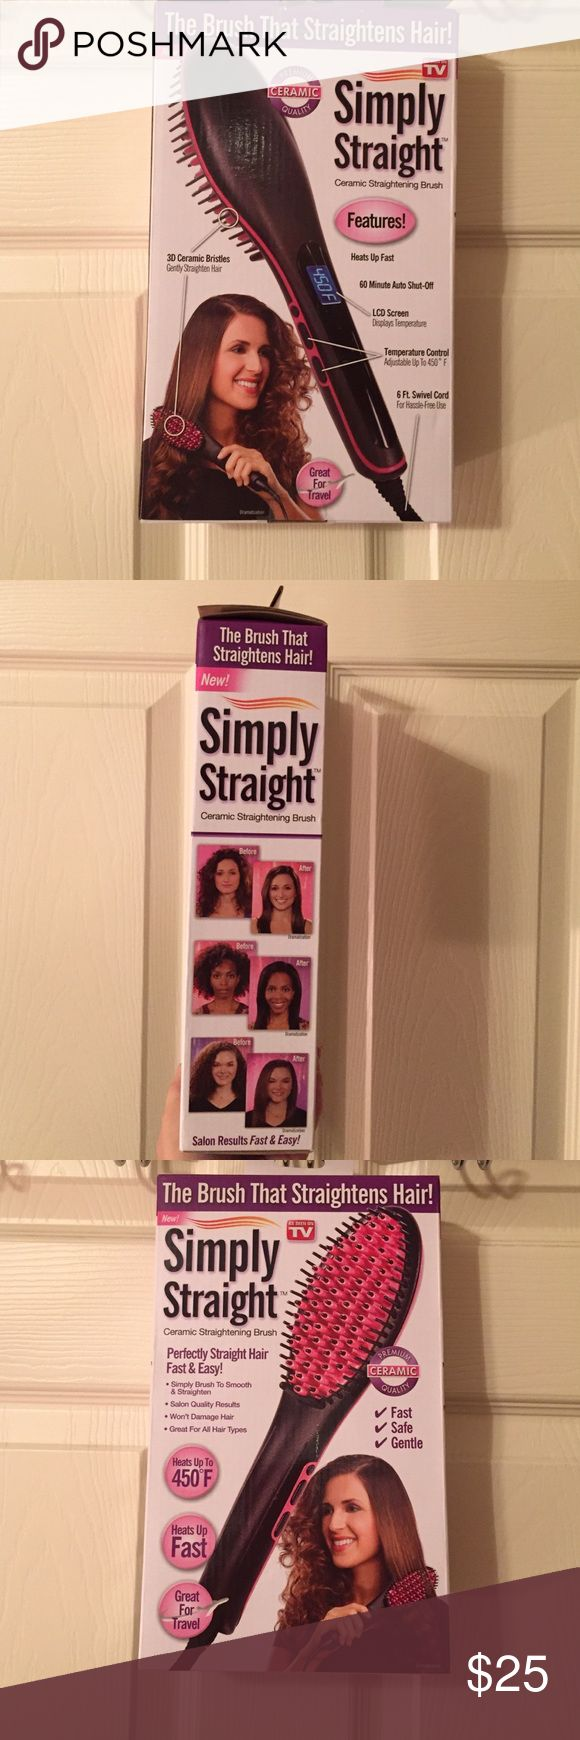 Memorial Day Weekend Sale Straight Brush As Seen On TV Simply Straight. The Brush That Straightens Hair! Ceramic Straightening Brush. Used once or twice. Additional pics of product available upon request. As Seen On TV Accessories Hair Accessories